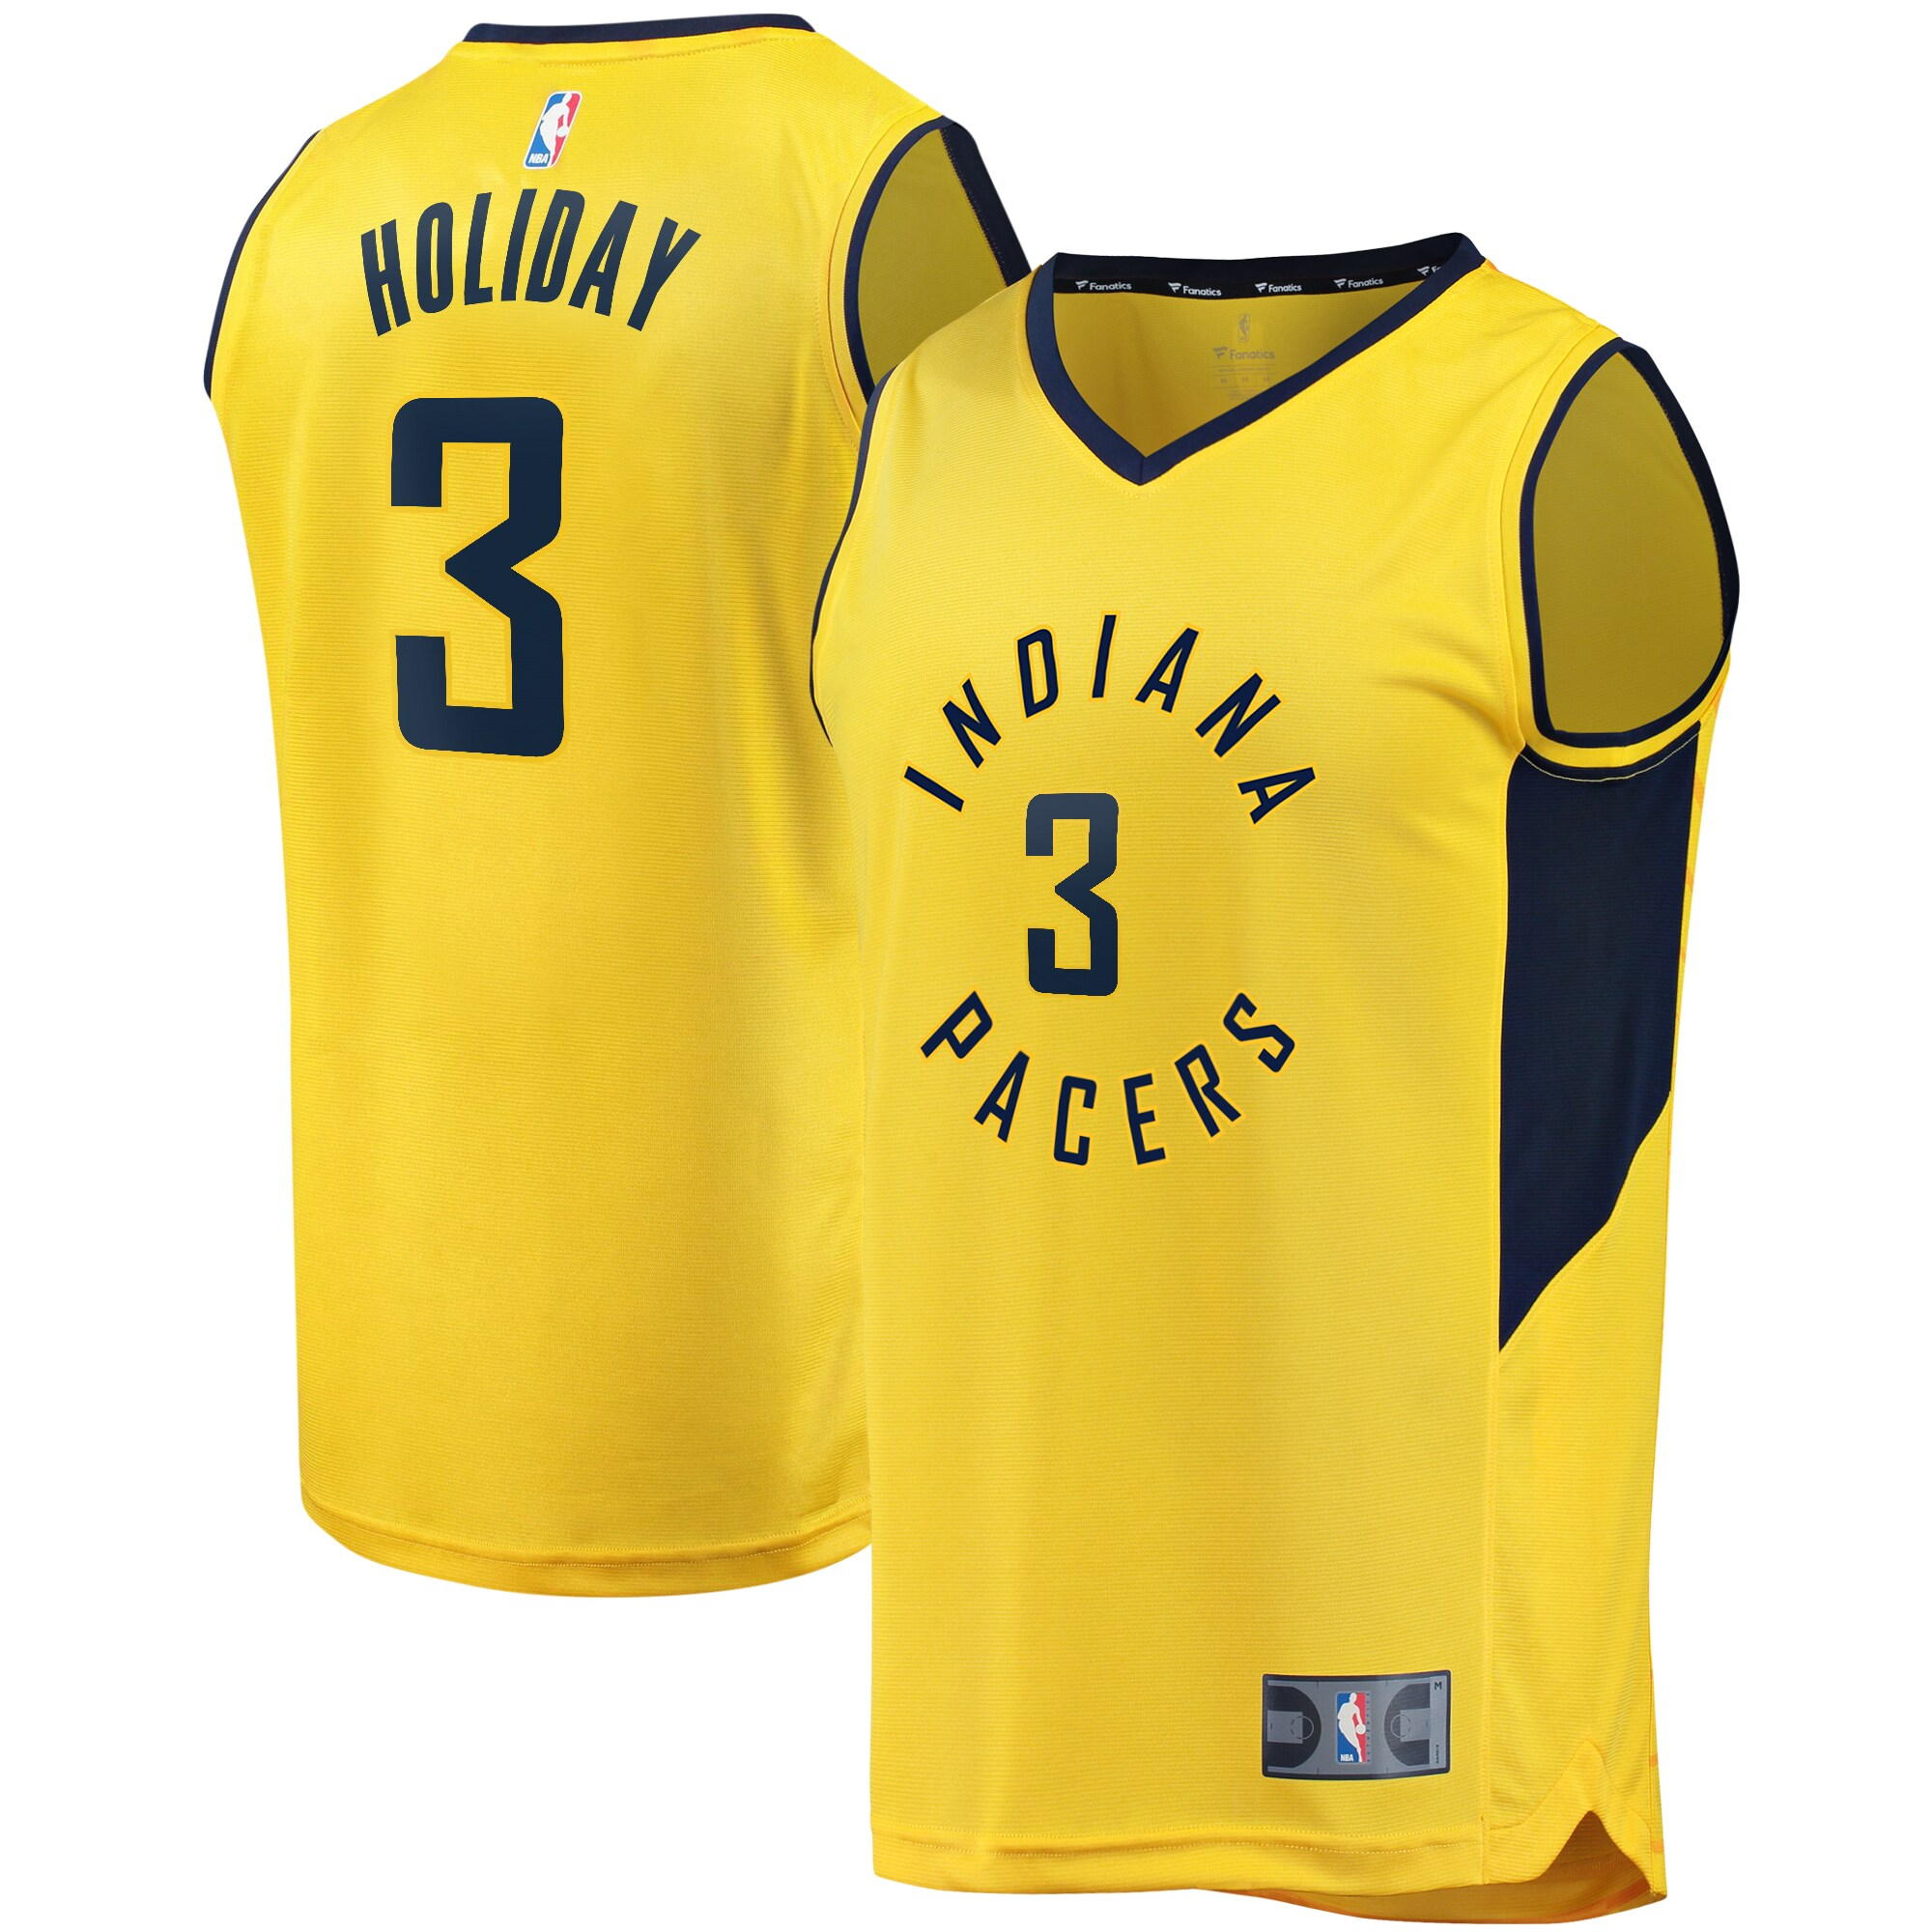 Aaron Holiday Indiana Pacers Fanatics Branded Youth Fast Break Replica Player Jersey - Statement Edition - Gold